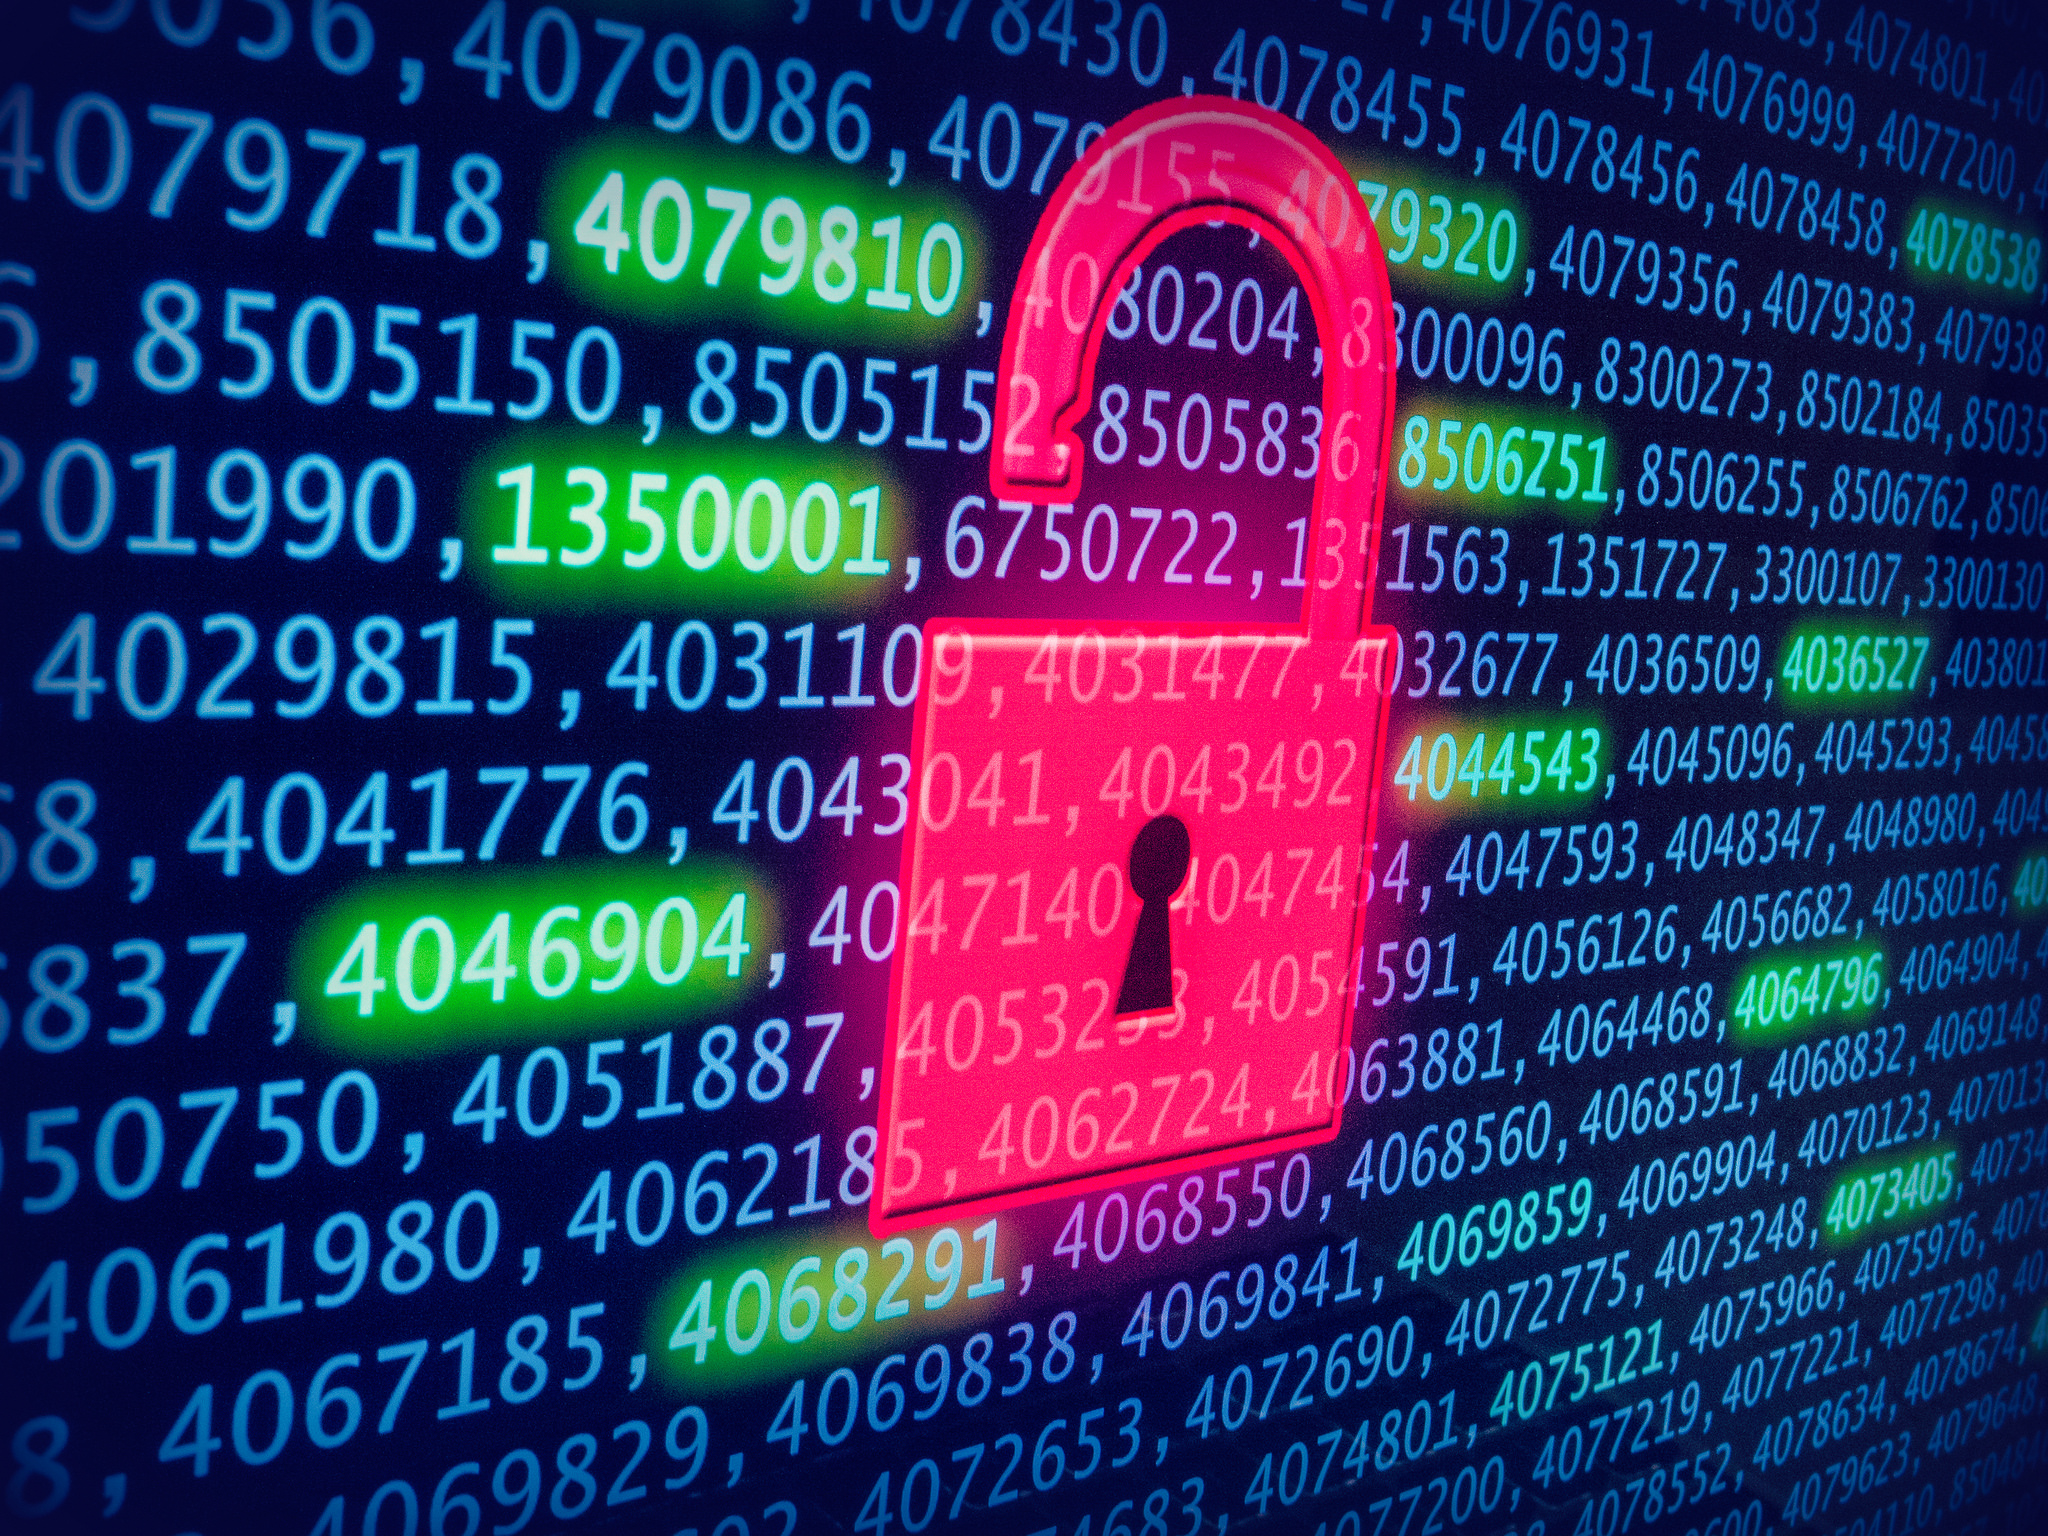 cyber crime economy now rivals GDP of major countries